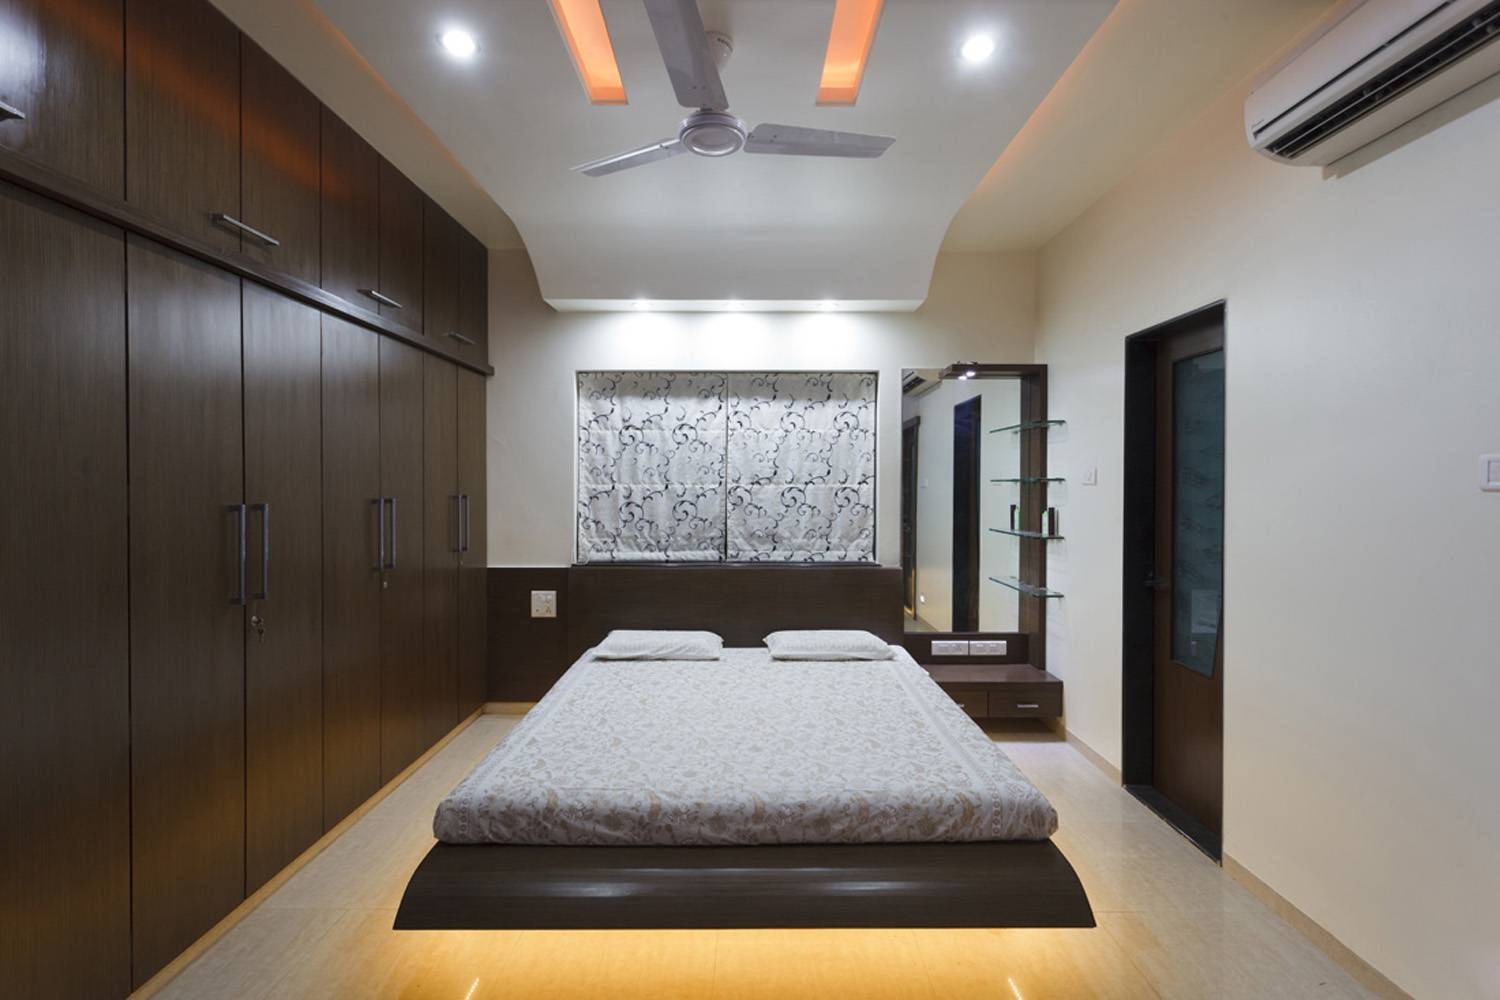 Bed room interior design portfolio leading interior for Interior designs rooms